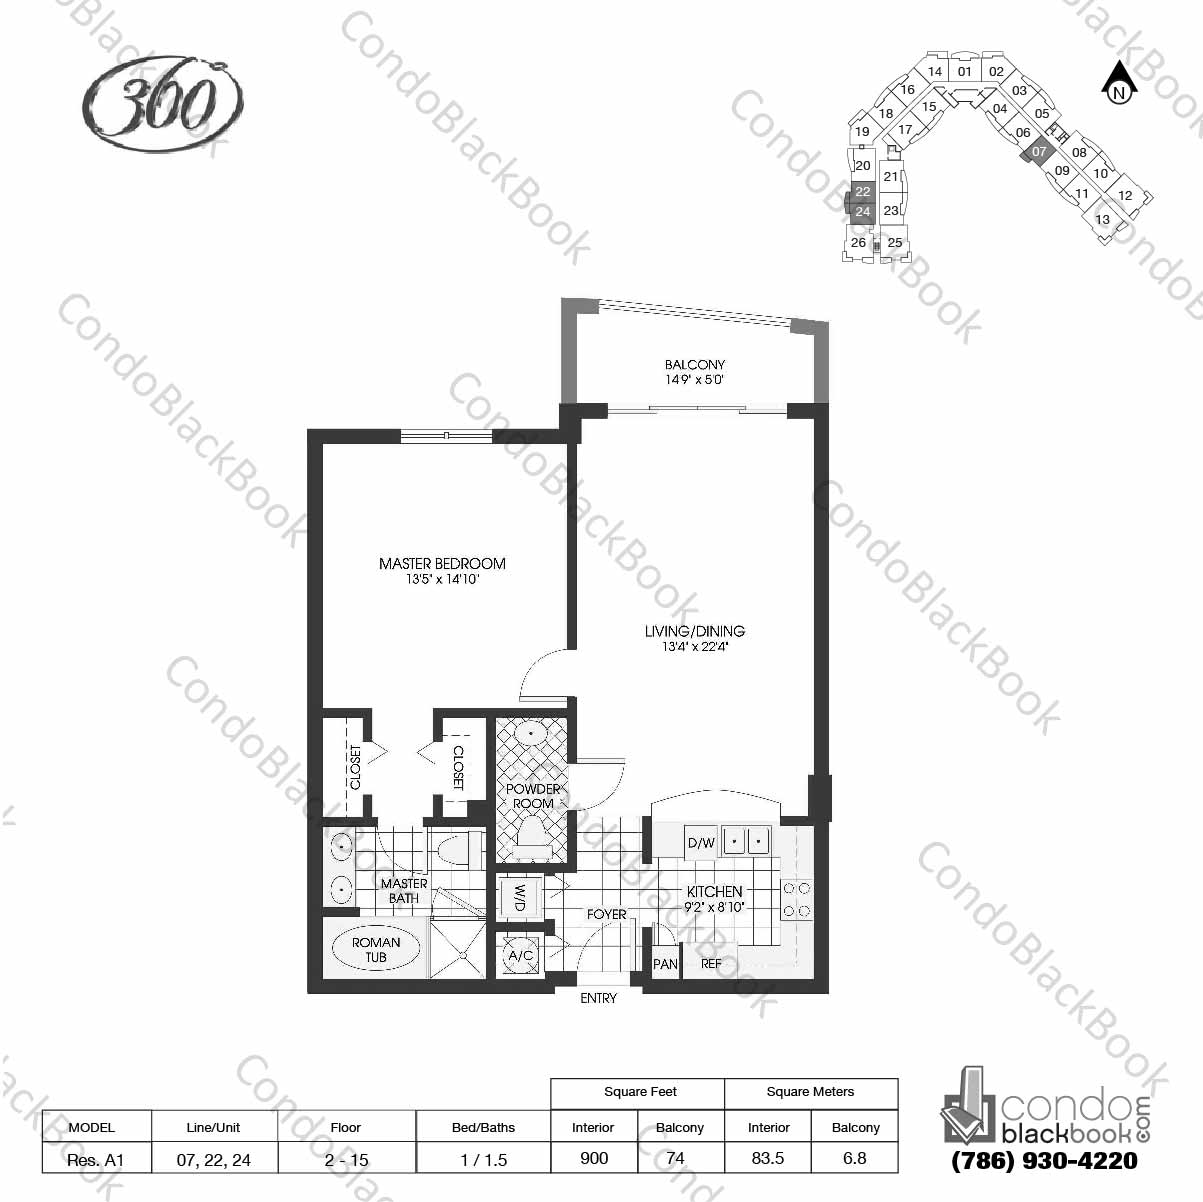 Floor plan for 360 Condo North Bay Village, model Res. A1, line 07, 22, 24, 1 / 1.5 bedrooms, 900 sq ft